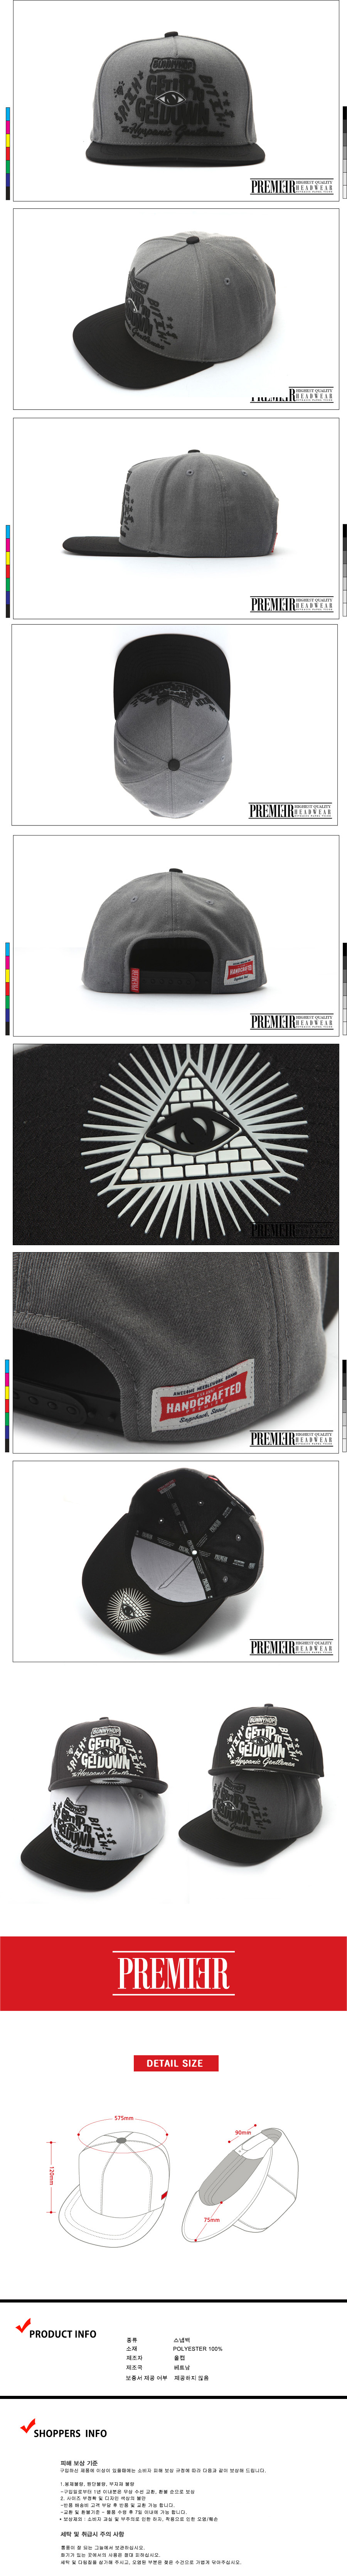 [ PREMIER ] [Premier] Snapback Get Up To Get Down Grey/Black